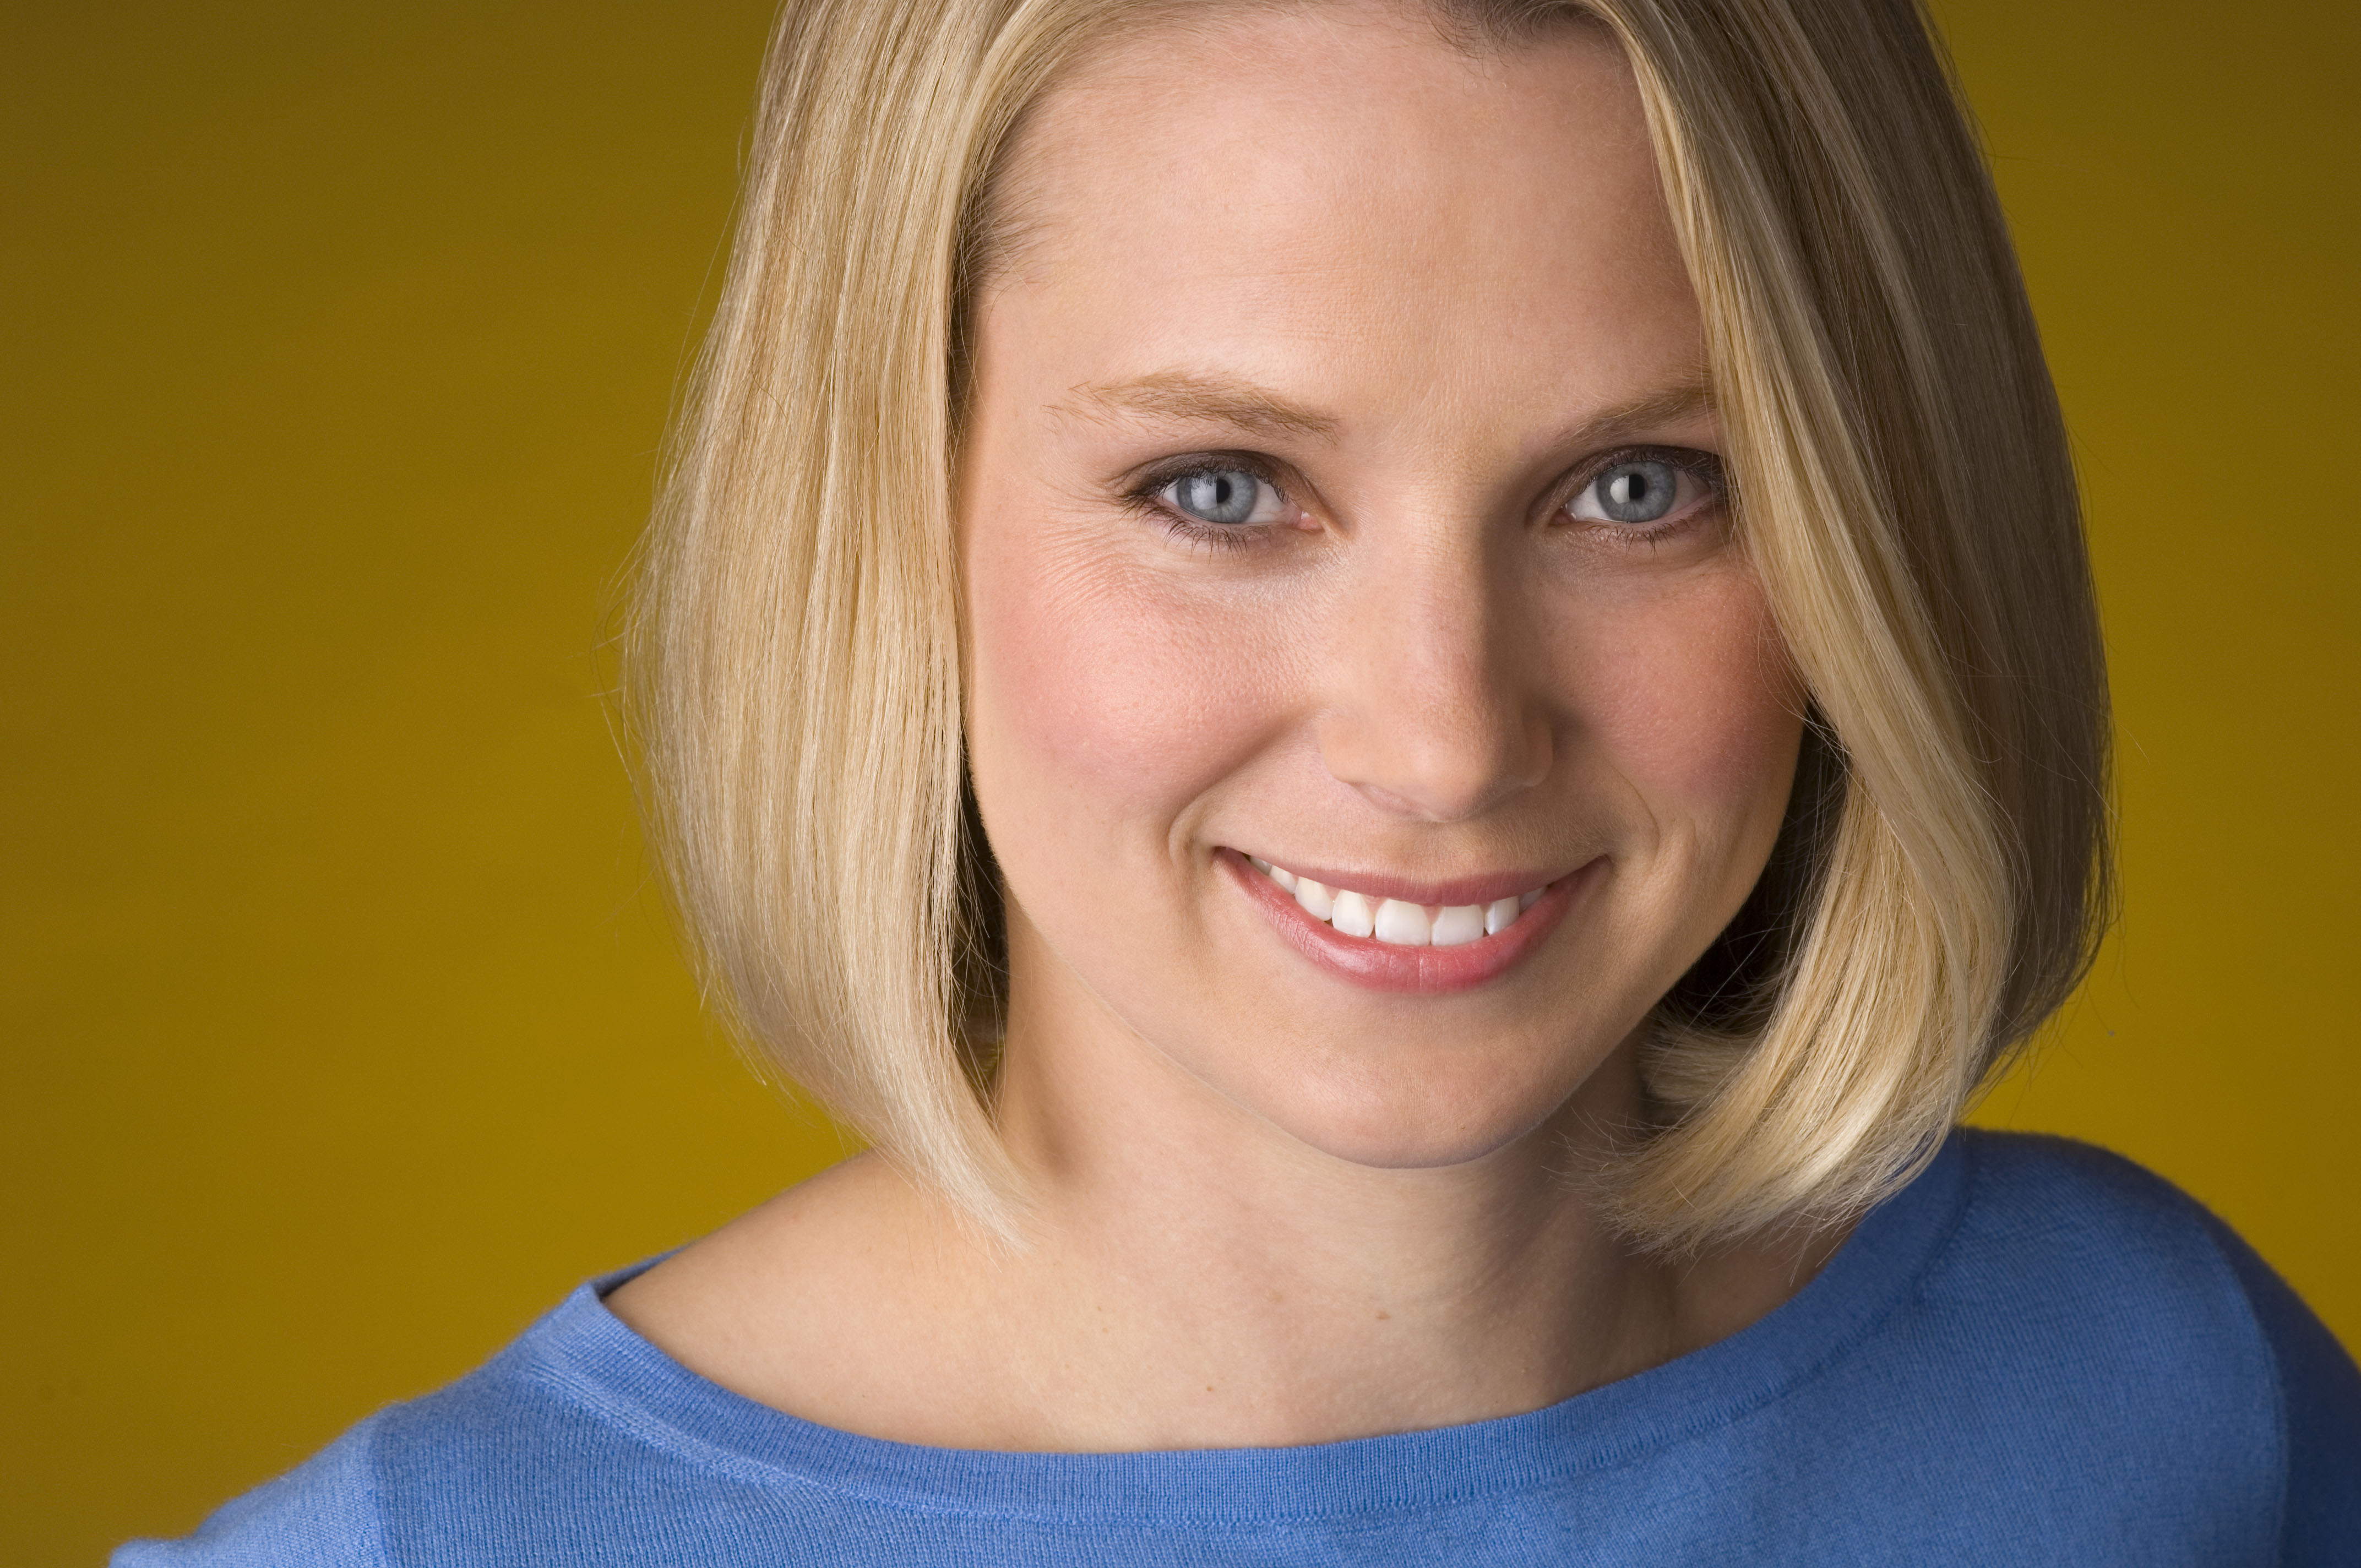 Marissa Mayer CEO di Yahoo Yahoo! si svecchia: acquista Tumblr, ridisegna Flickr e approda su iOS 7